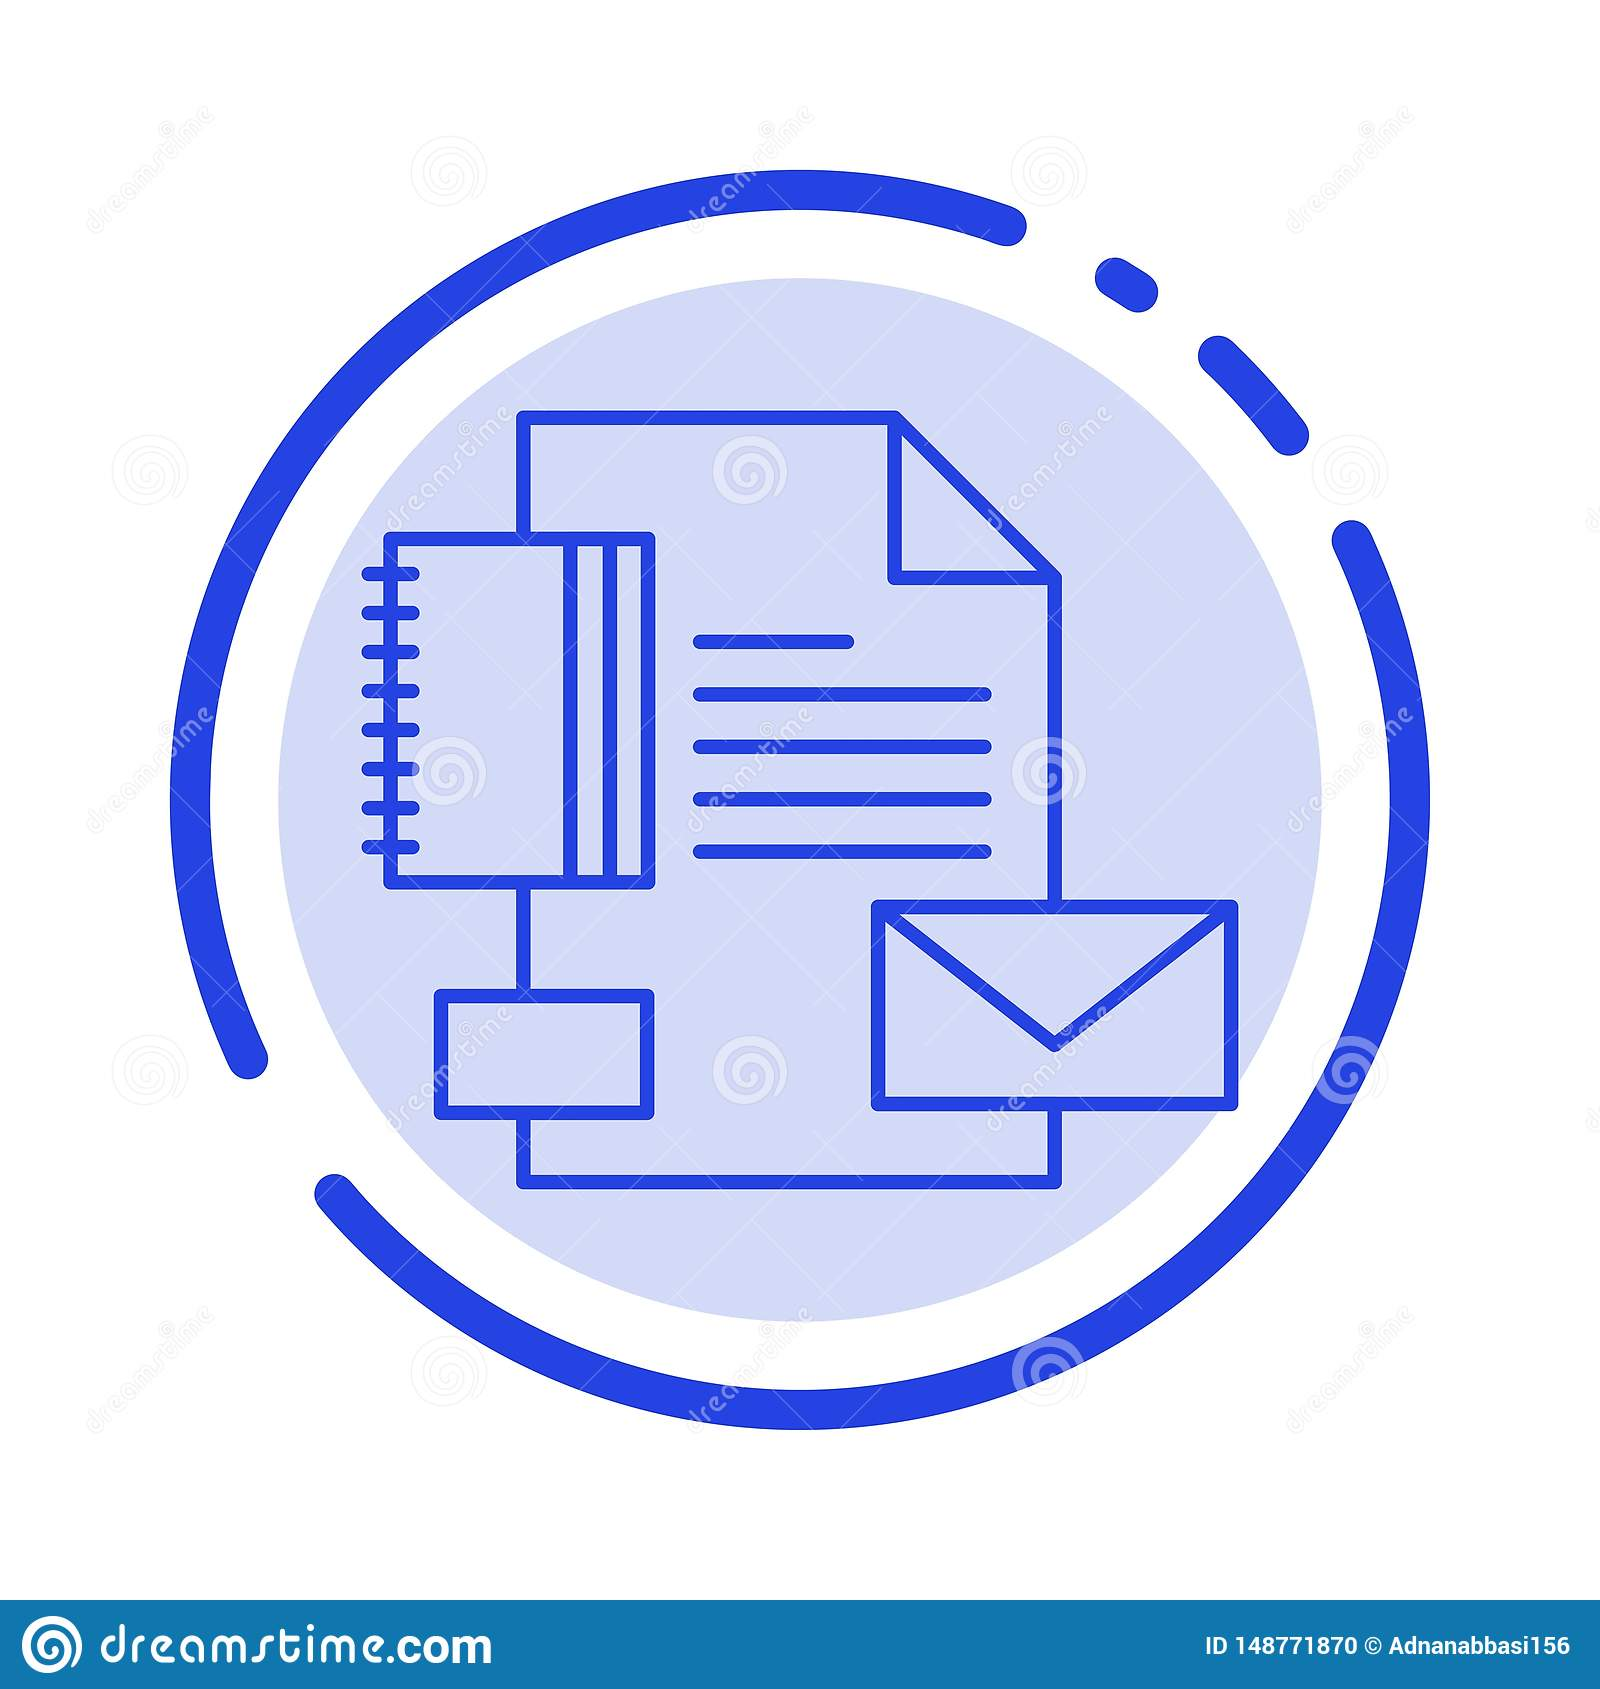 branding brand business company identity blue dotted line line icon stock vector illustration of background geometric 148771870 https www dreamstime com branding brand business company identity blue dotted line icon image148771870